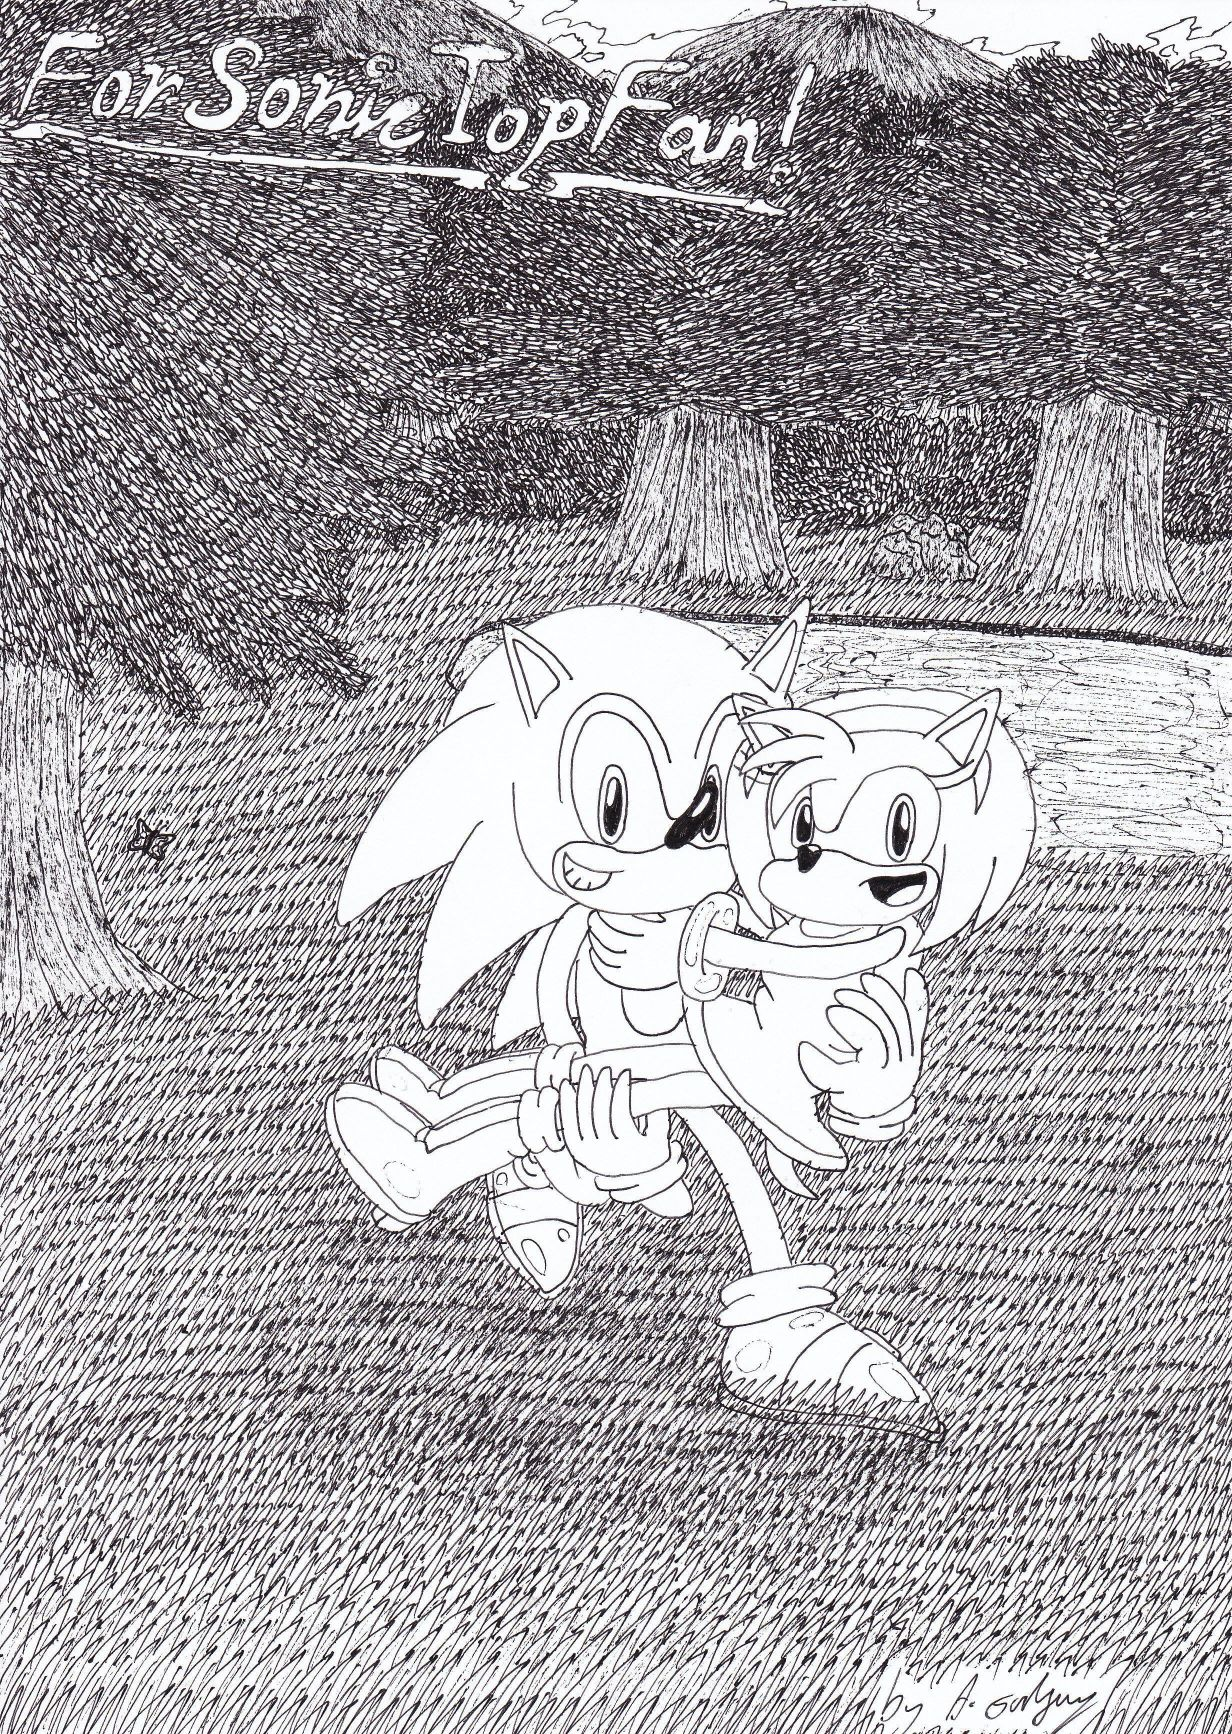 Don't give up SonicTopFan!